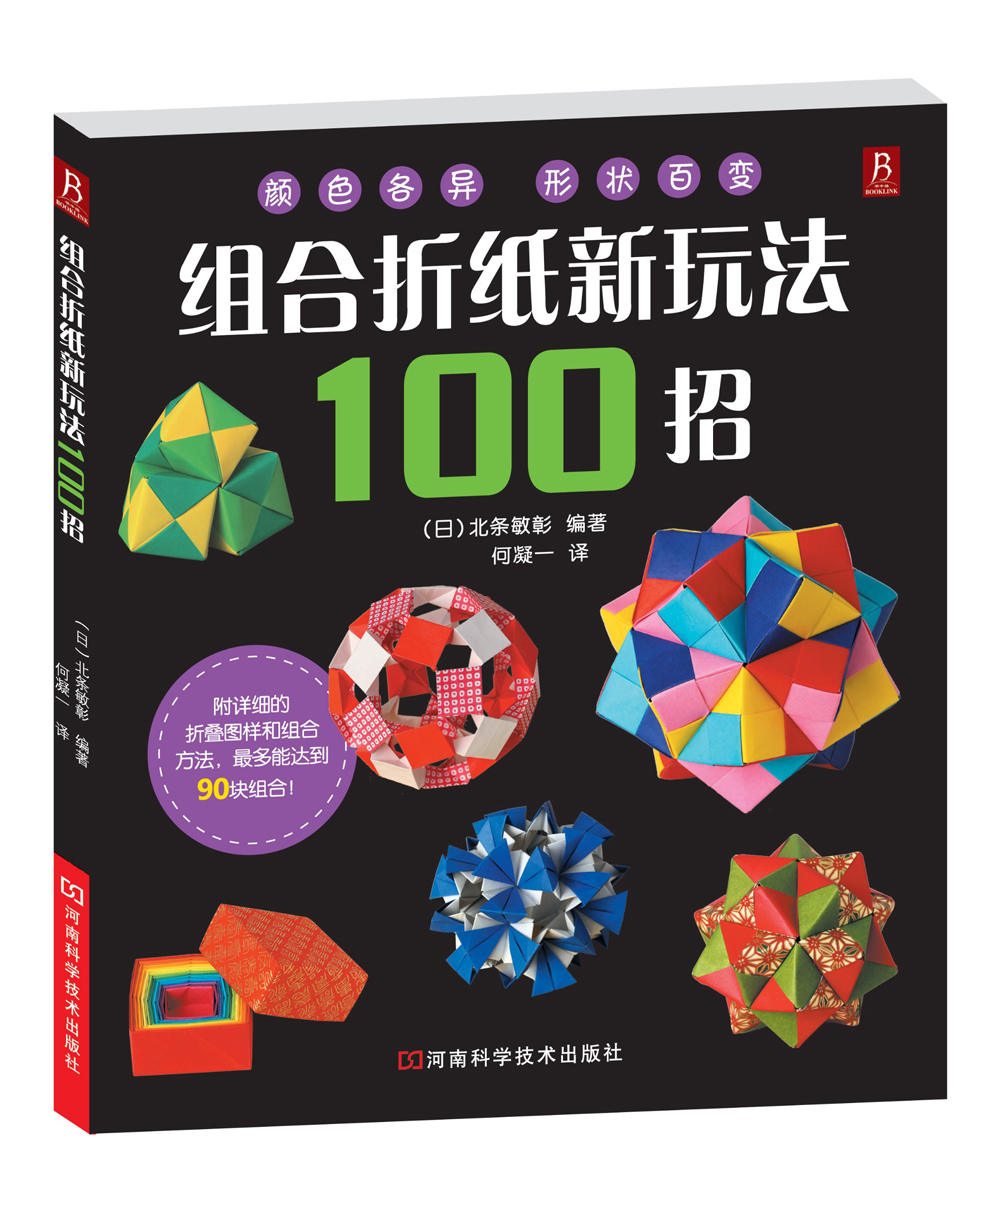 100 new ways to combine Origami / Chinese Handmade Carft Book100 new ways to combine Origami / Chinese Handmade Carft Book